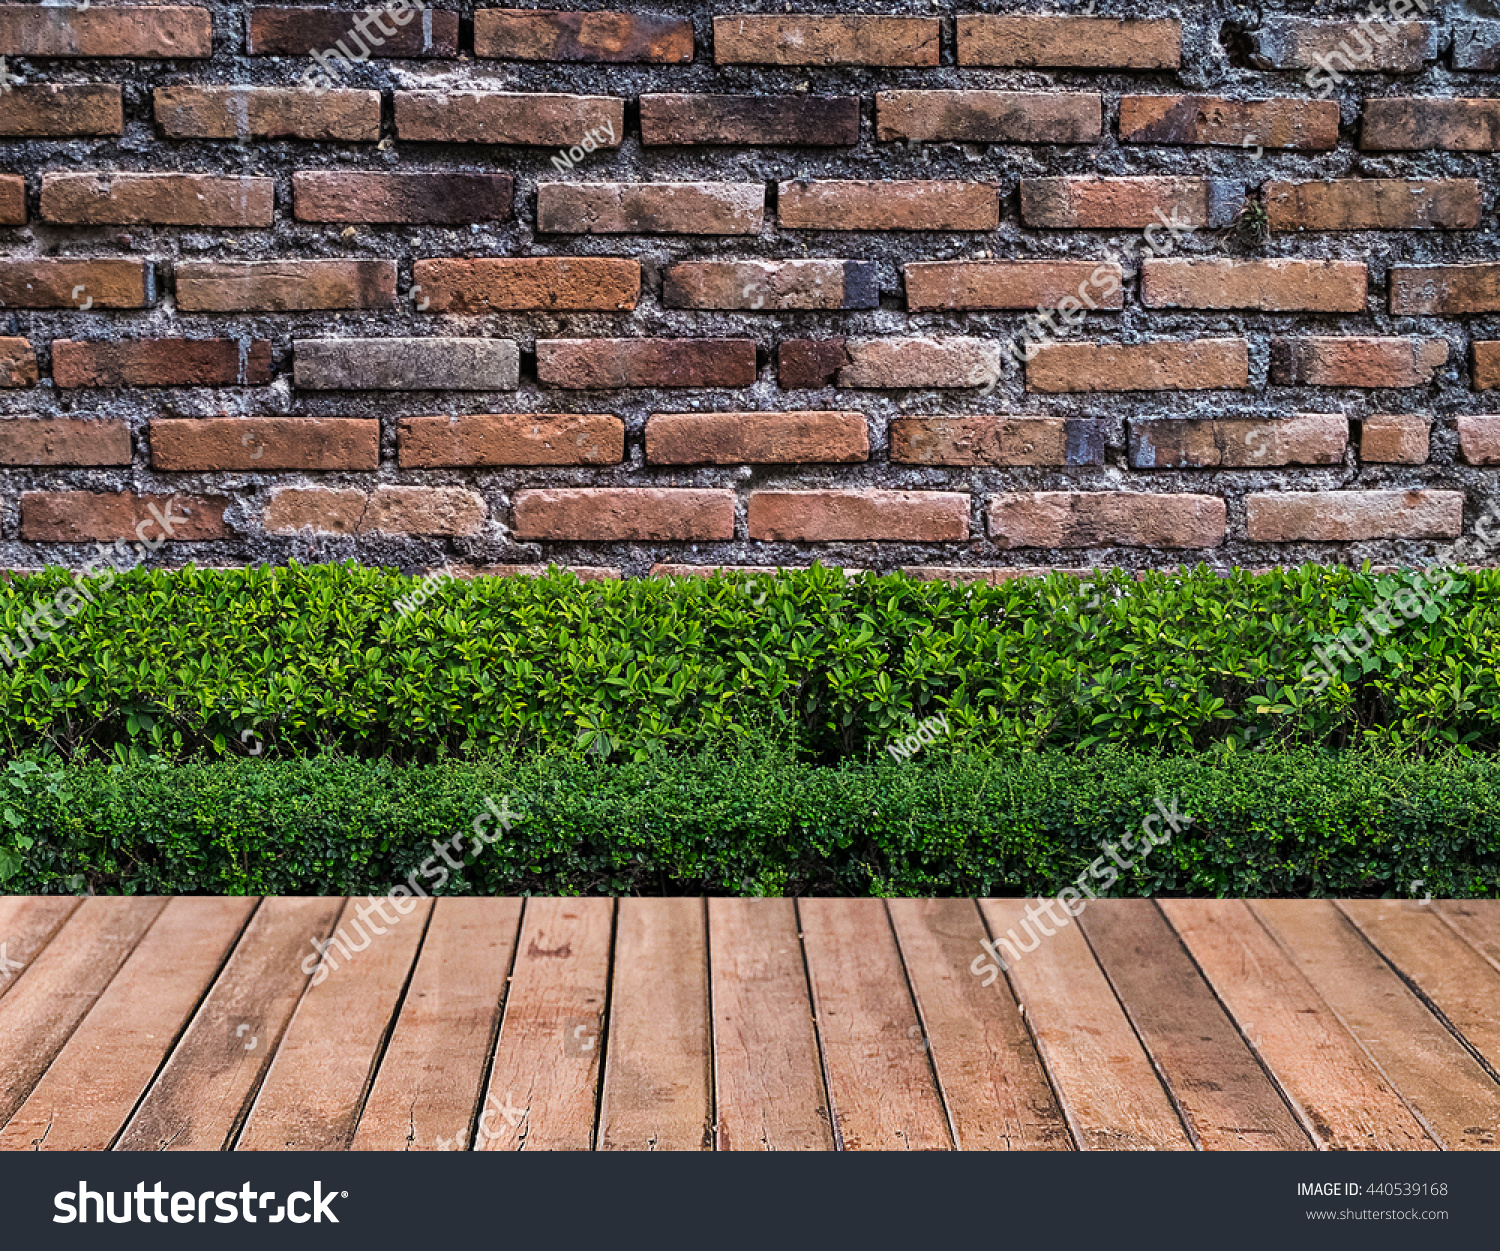 Wooden Flooring Plant Garden Decorative On Stock Photo 440539168 ...